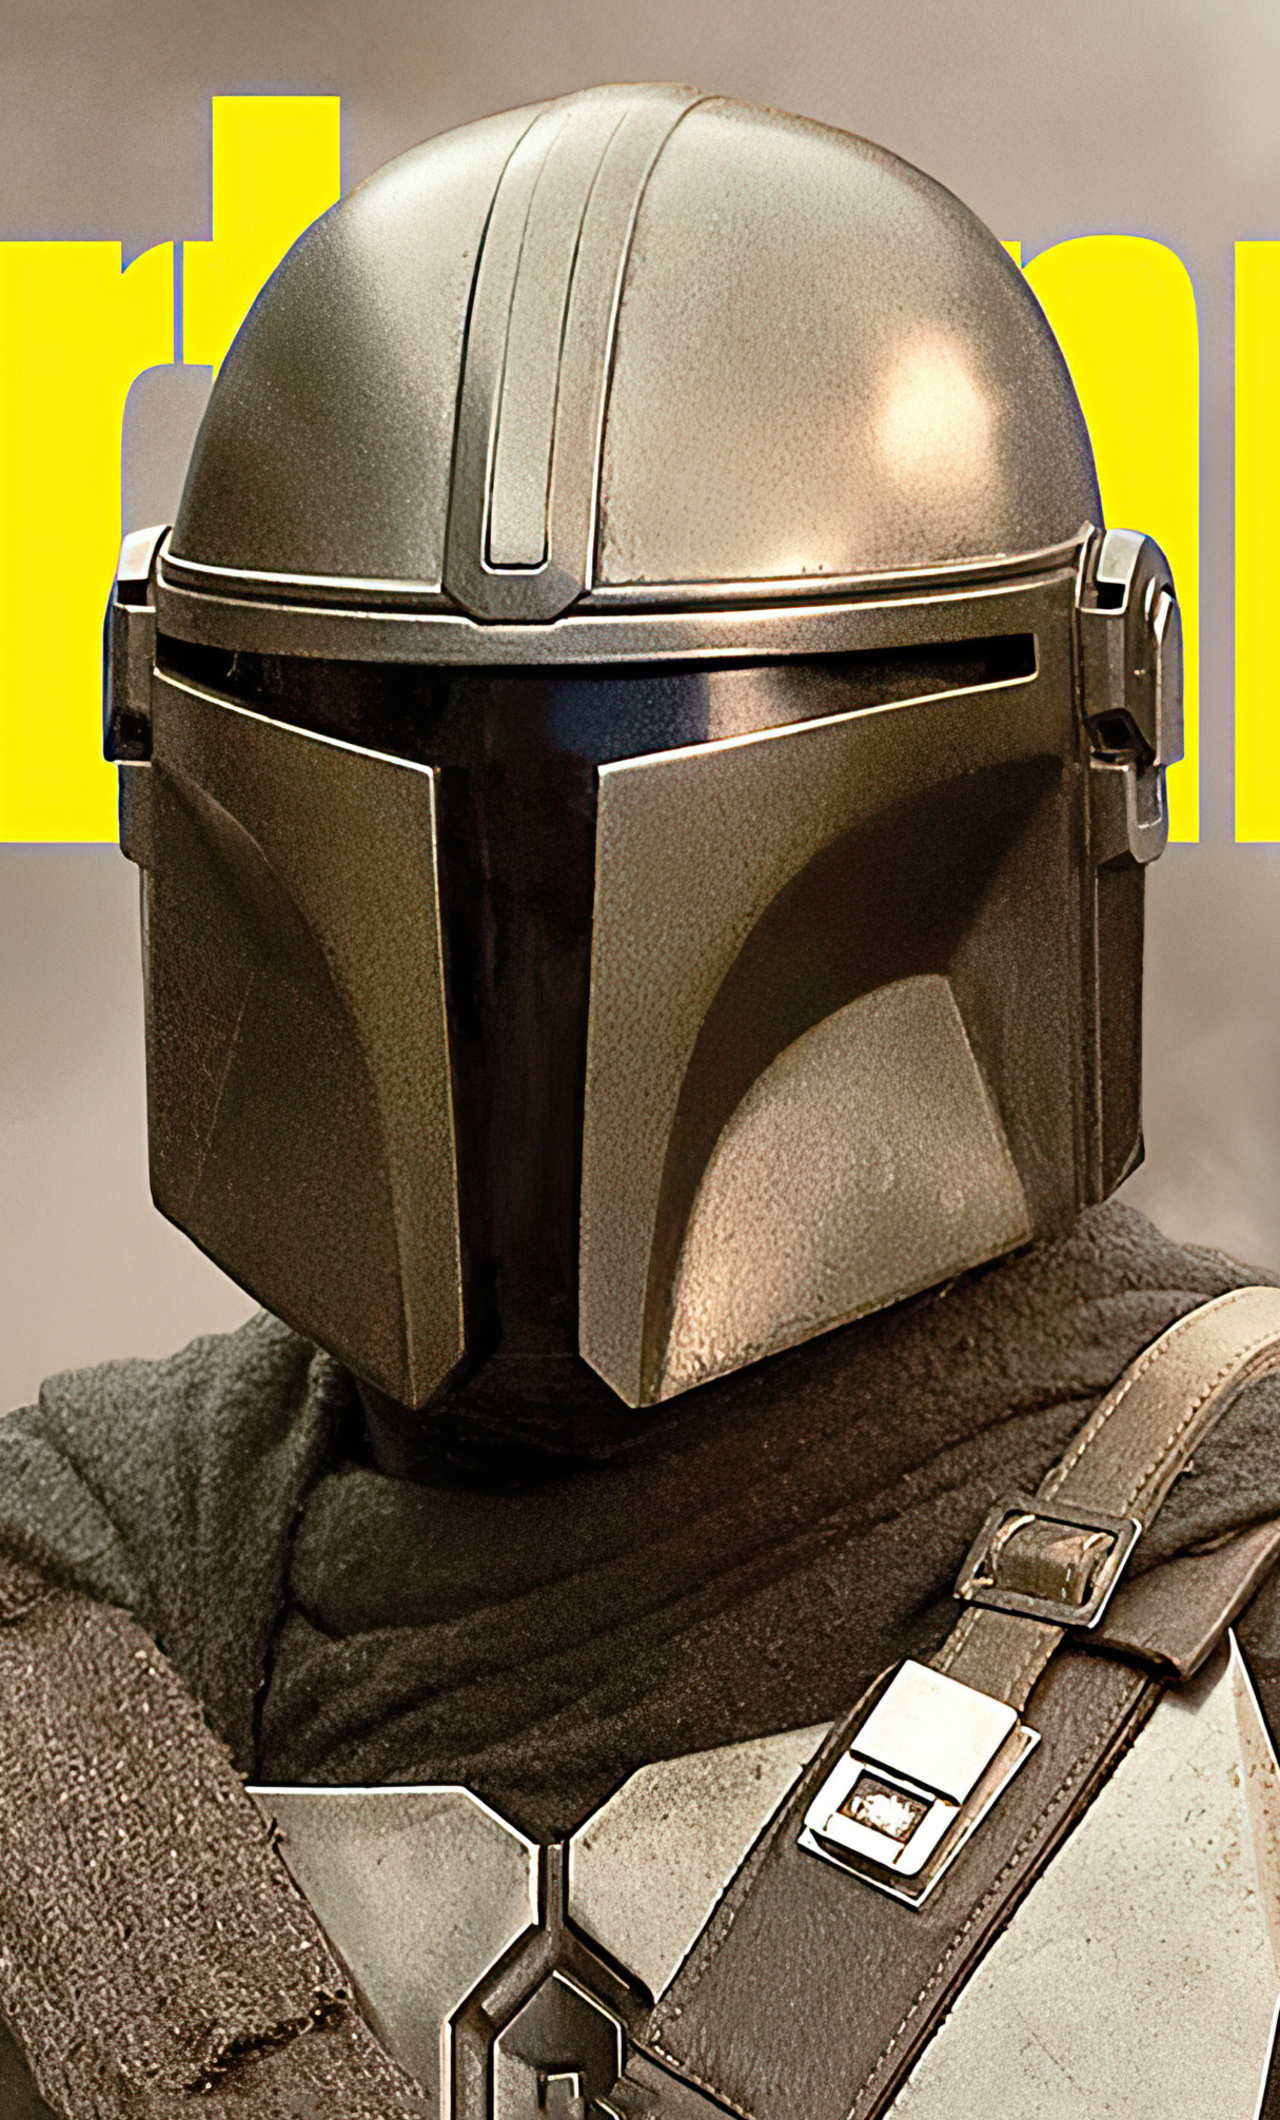 1280x2120 The Mandalorian Season 2 Entertainment Weekly Iphone 6 Hd 4k Wallpapers Images Backgrounds Photos And Pictures